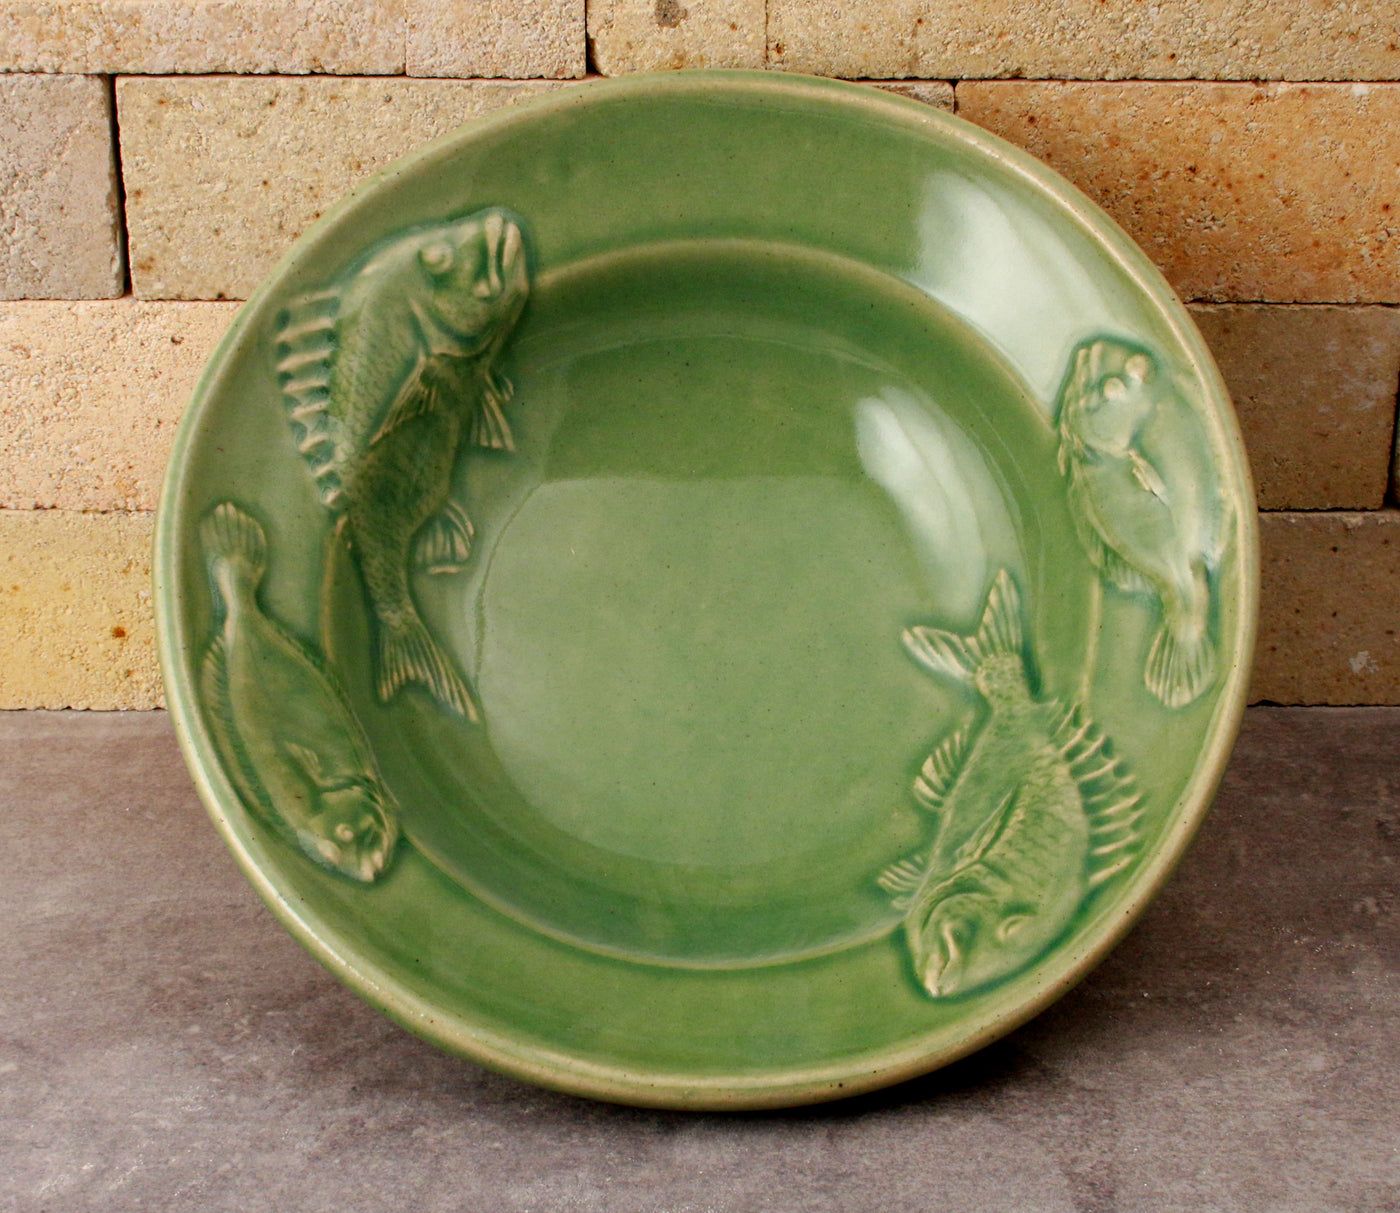 Fluke and Scup Relief Bowl - Sea Green